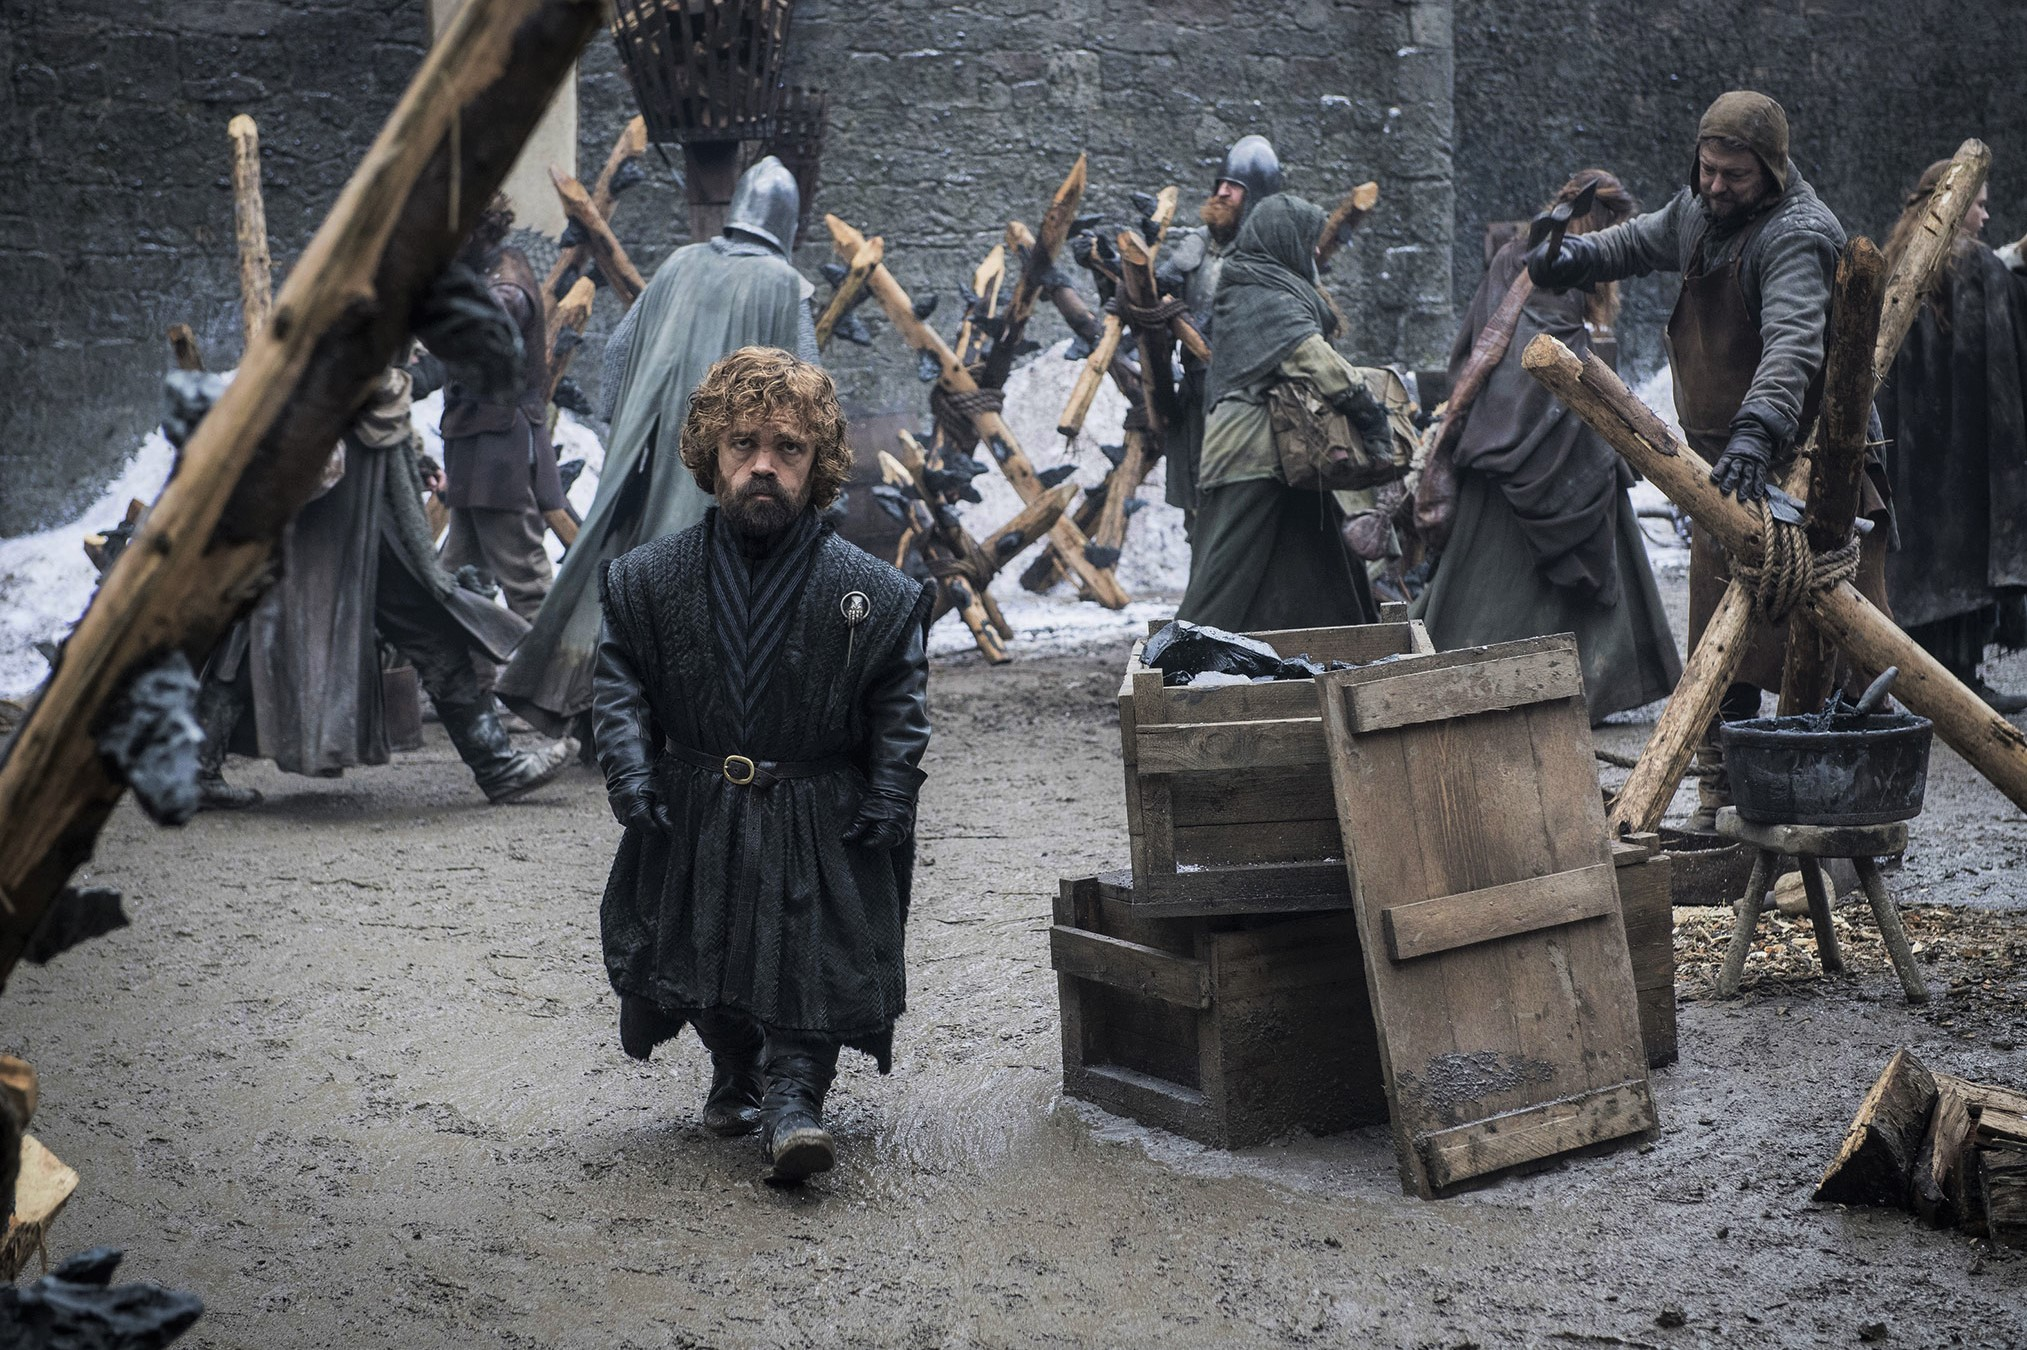 A new promotional pic of Tyrion in Season 8, in the courtyard of Winterfell.